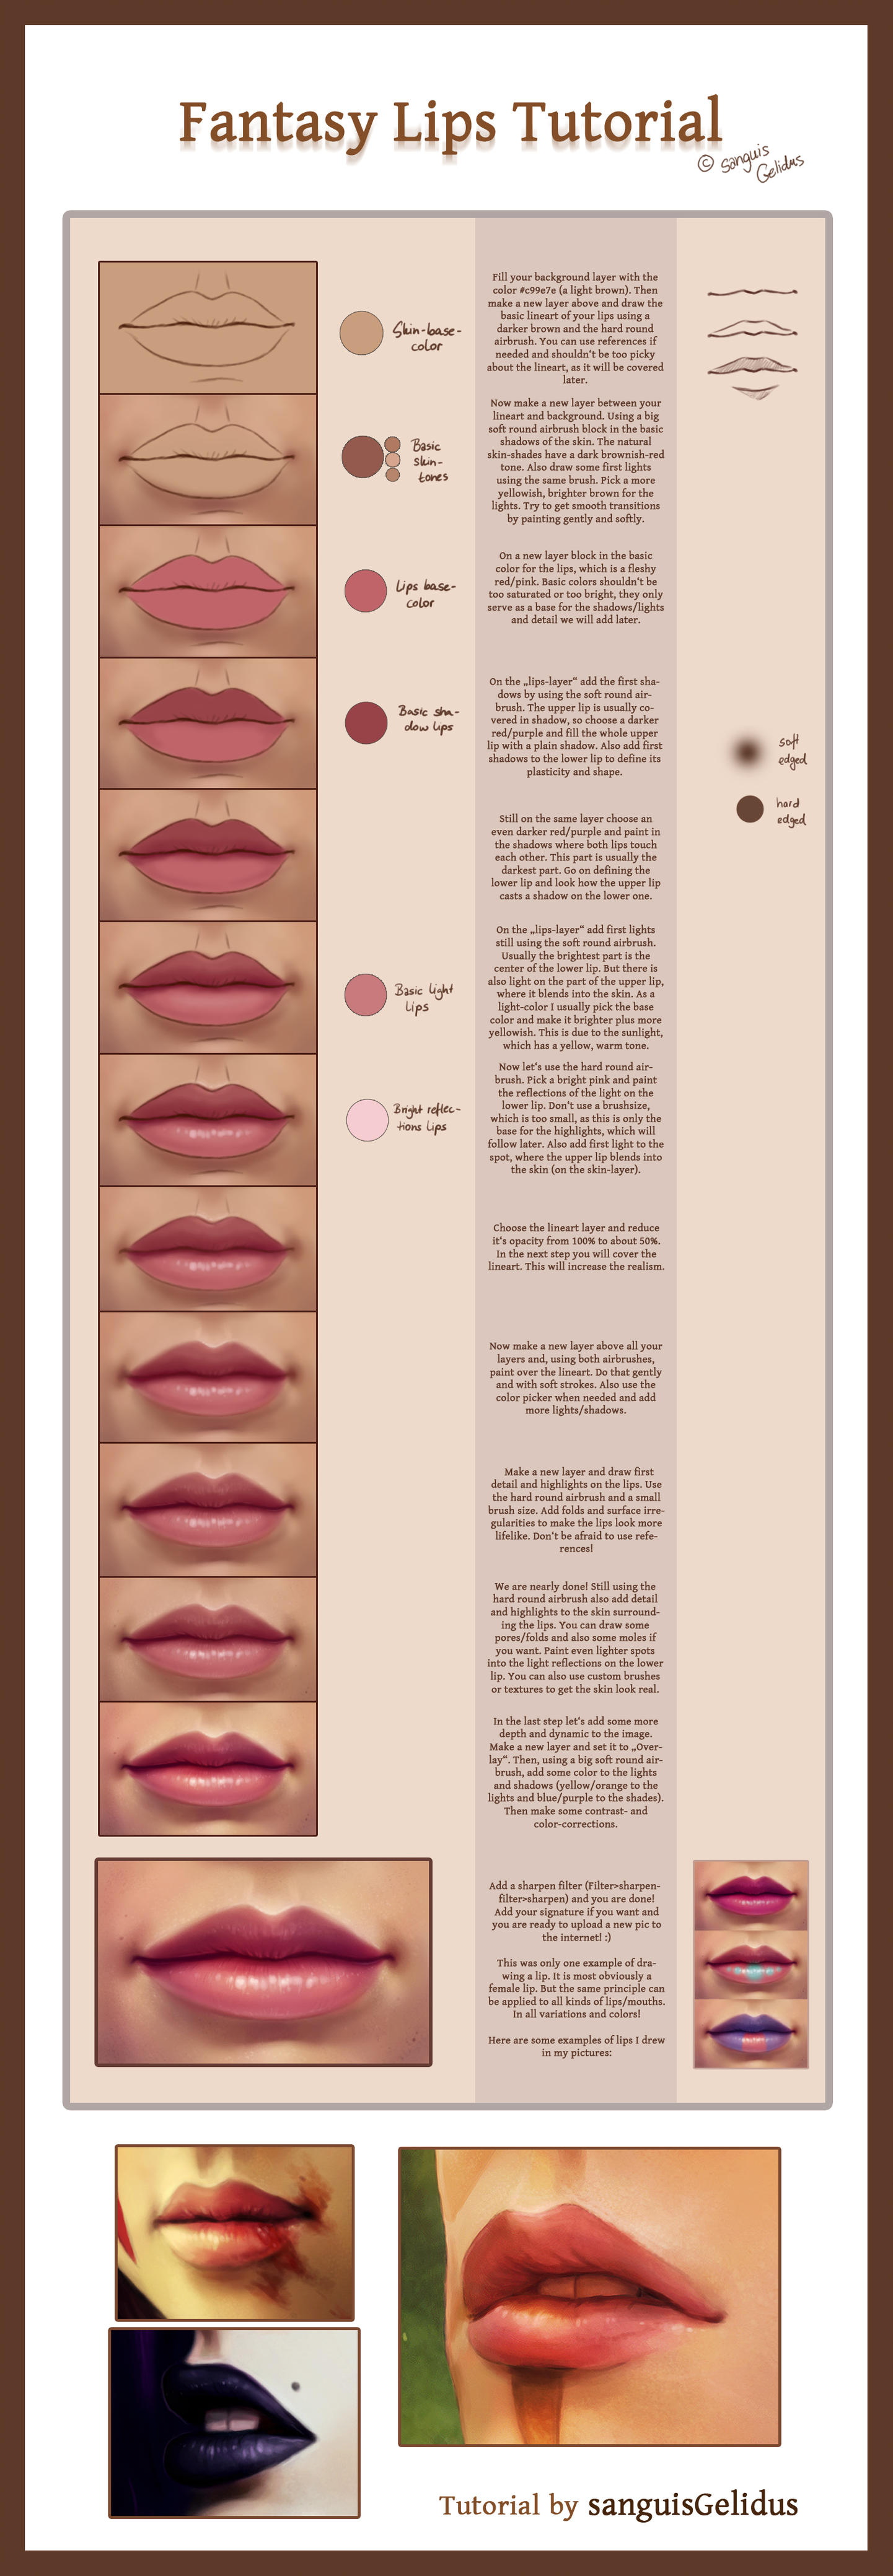 Fantasy Lips Tutorial by JoJoesArt